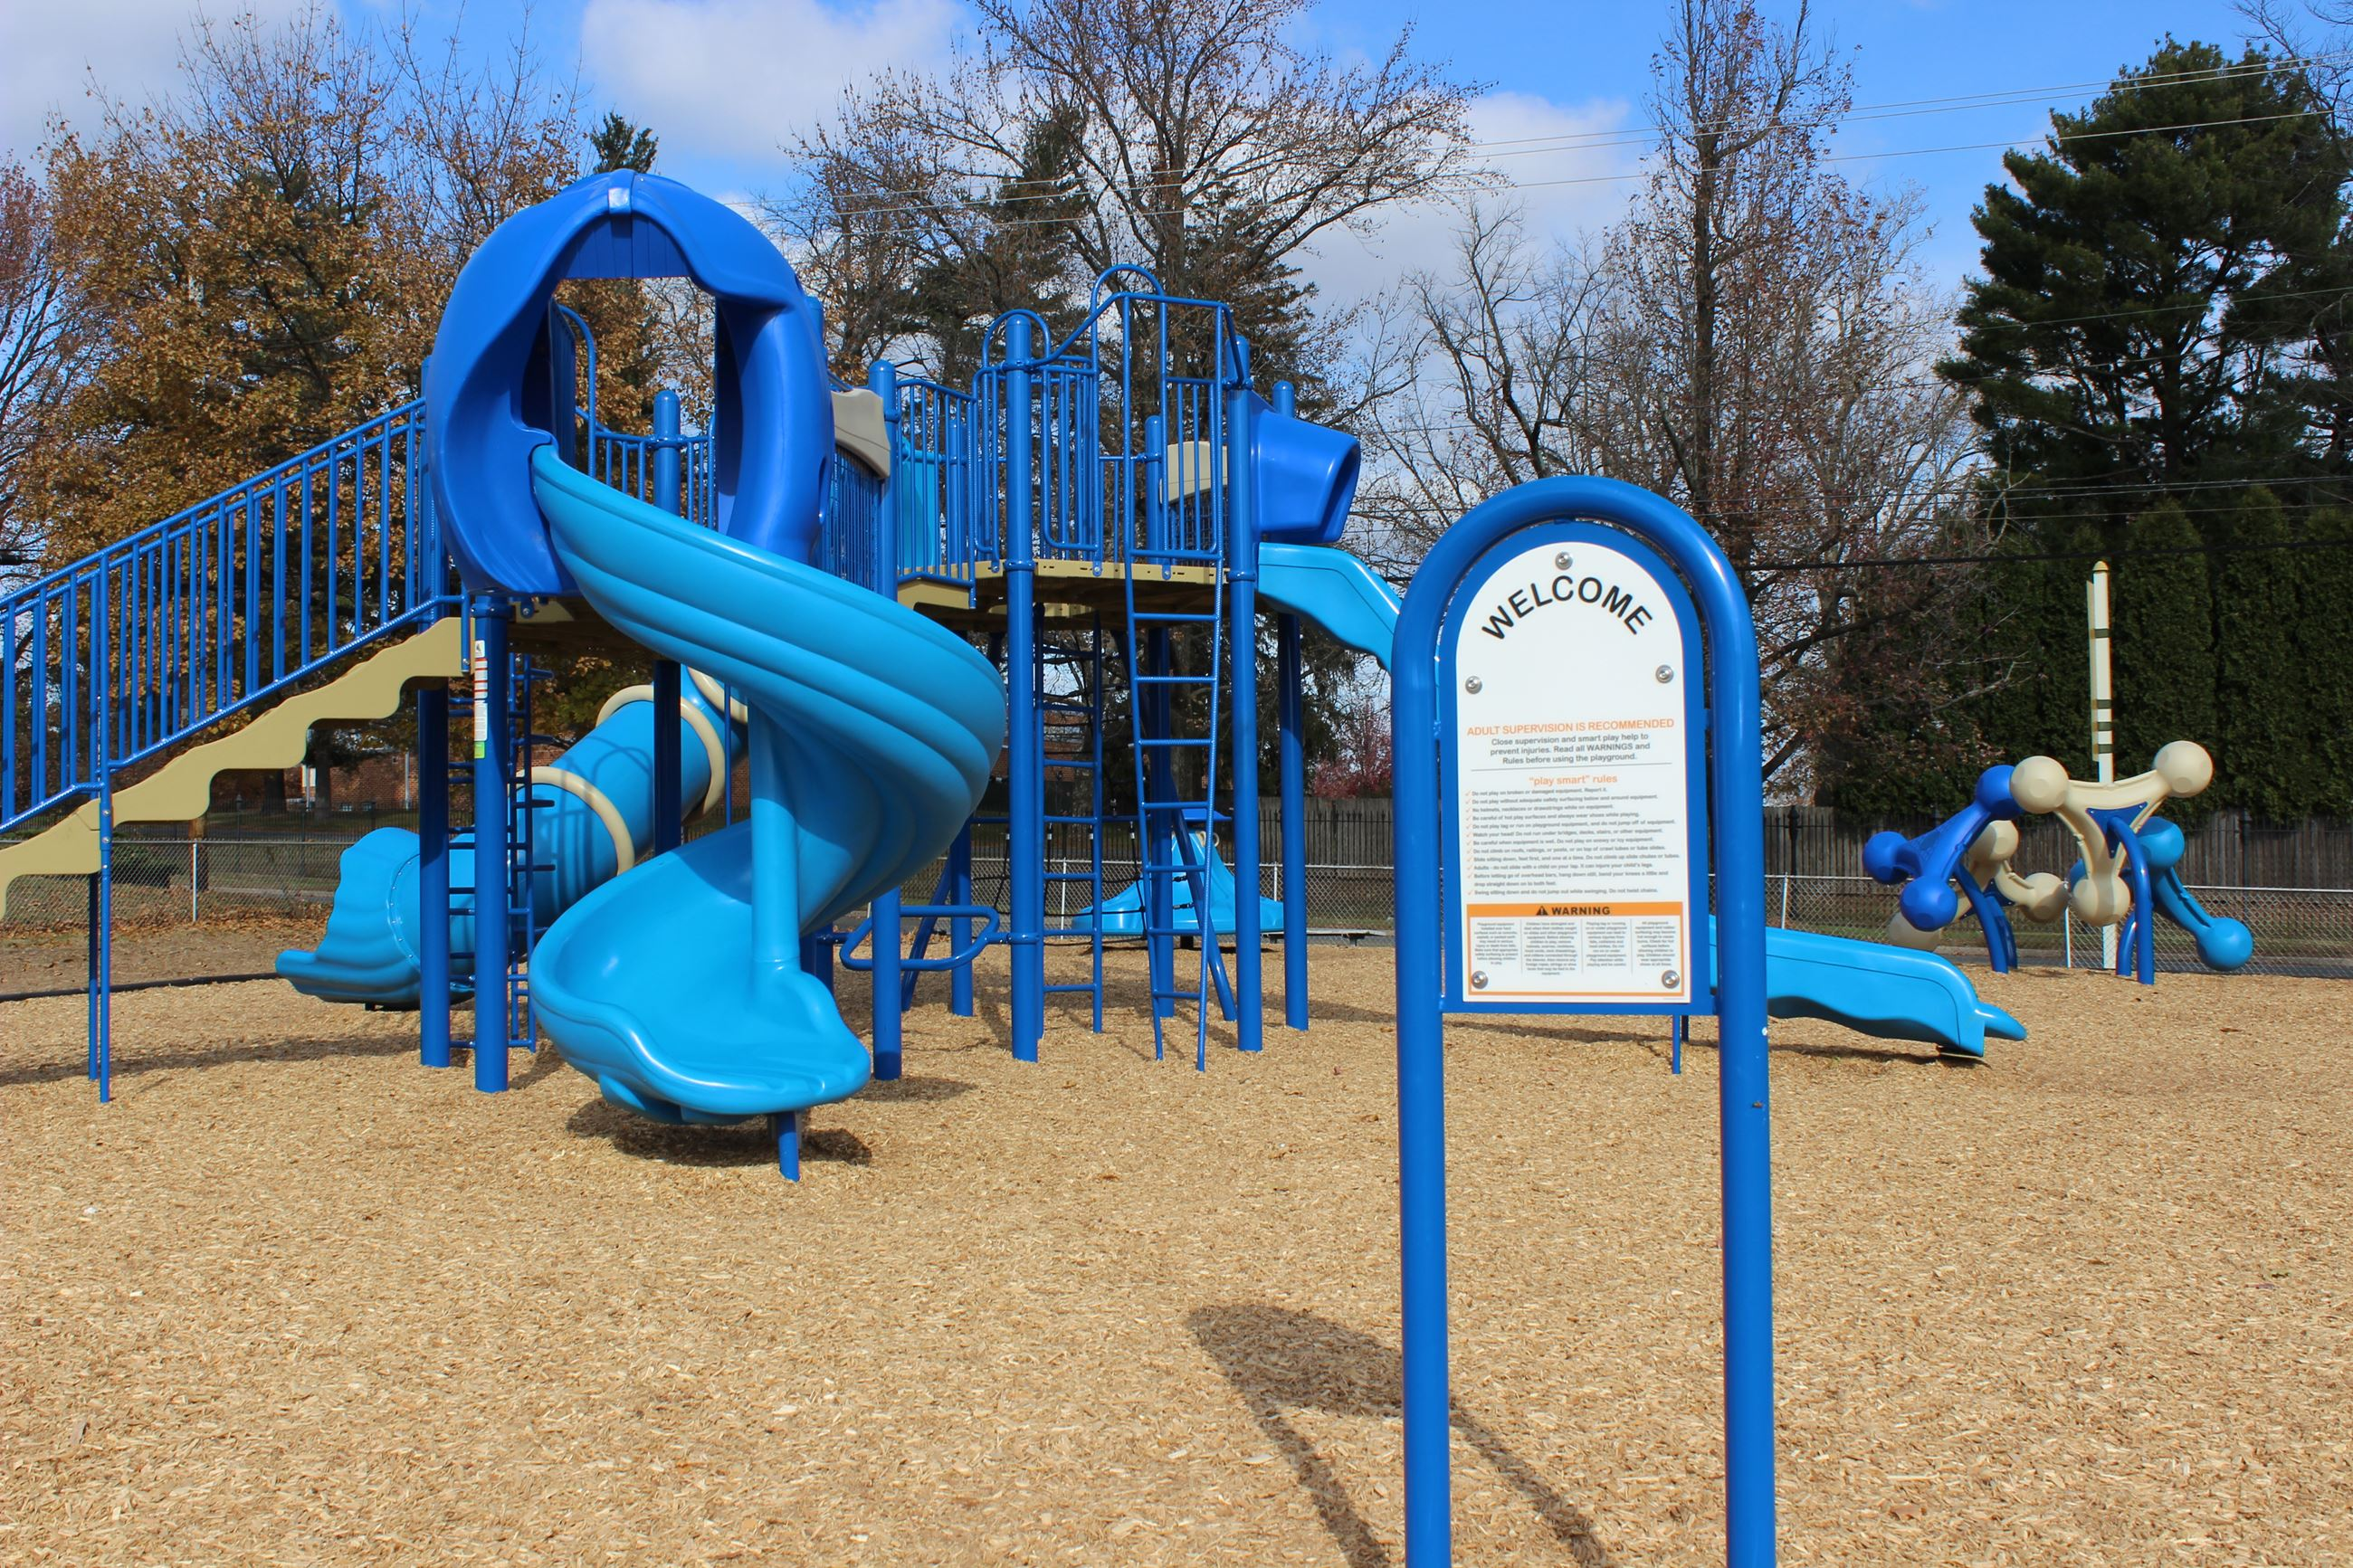 Brand New blue playground Equipment